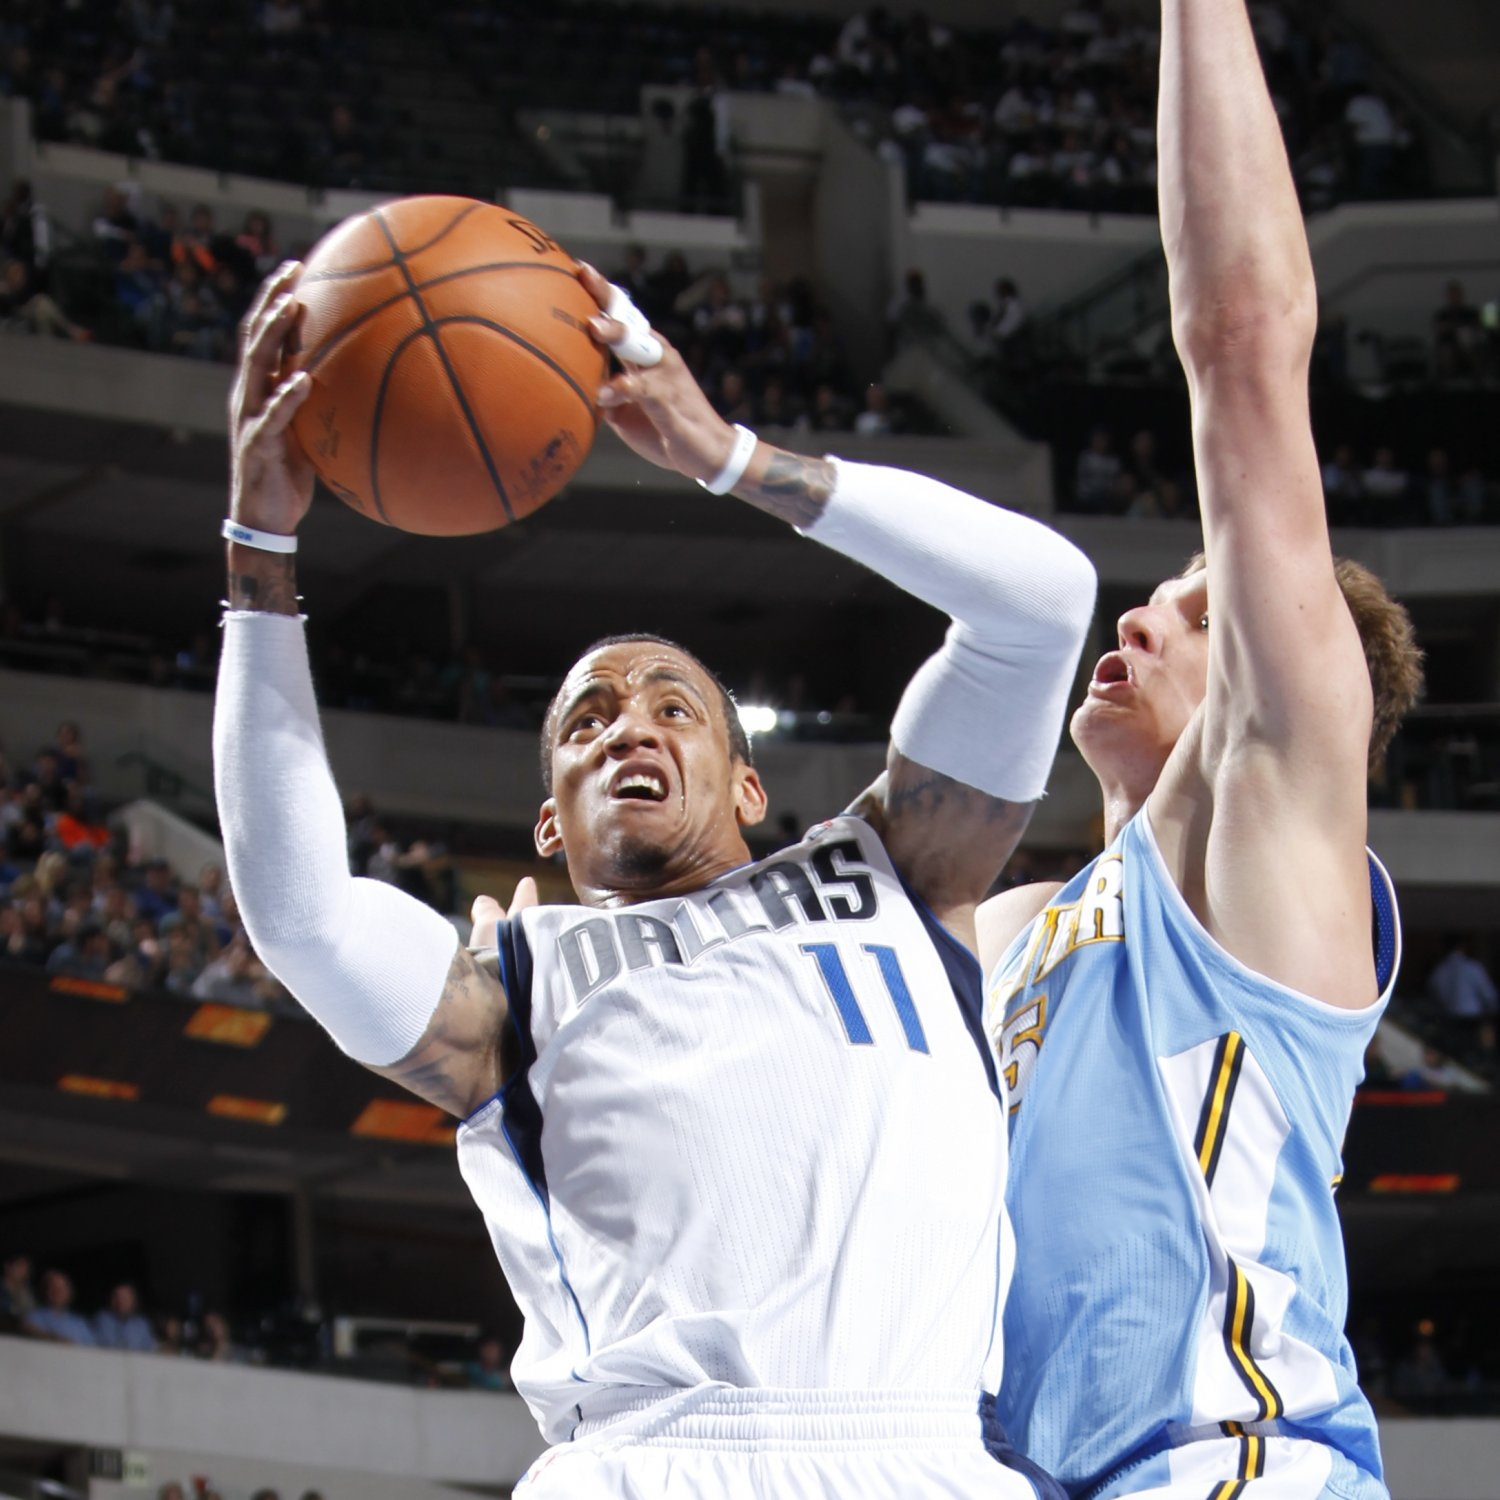 Denver Nuggets Vs. Dallas Mavericks 3/21/14: Video